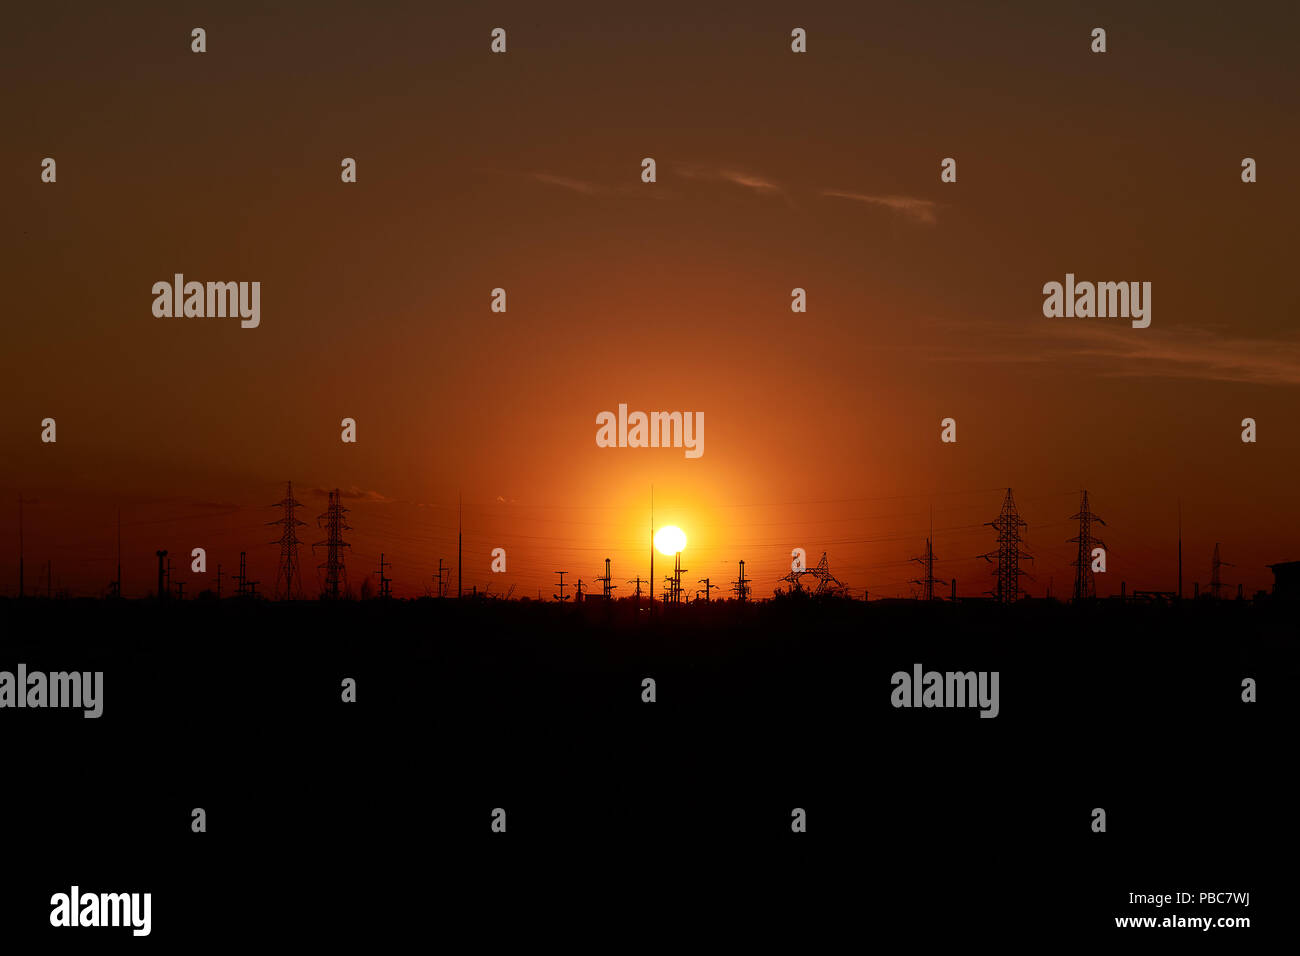 The periphery of the city at sunset - Stock Image